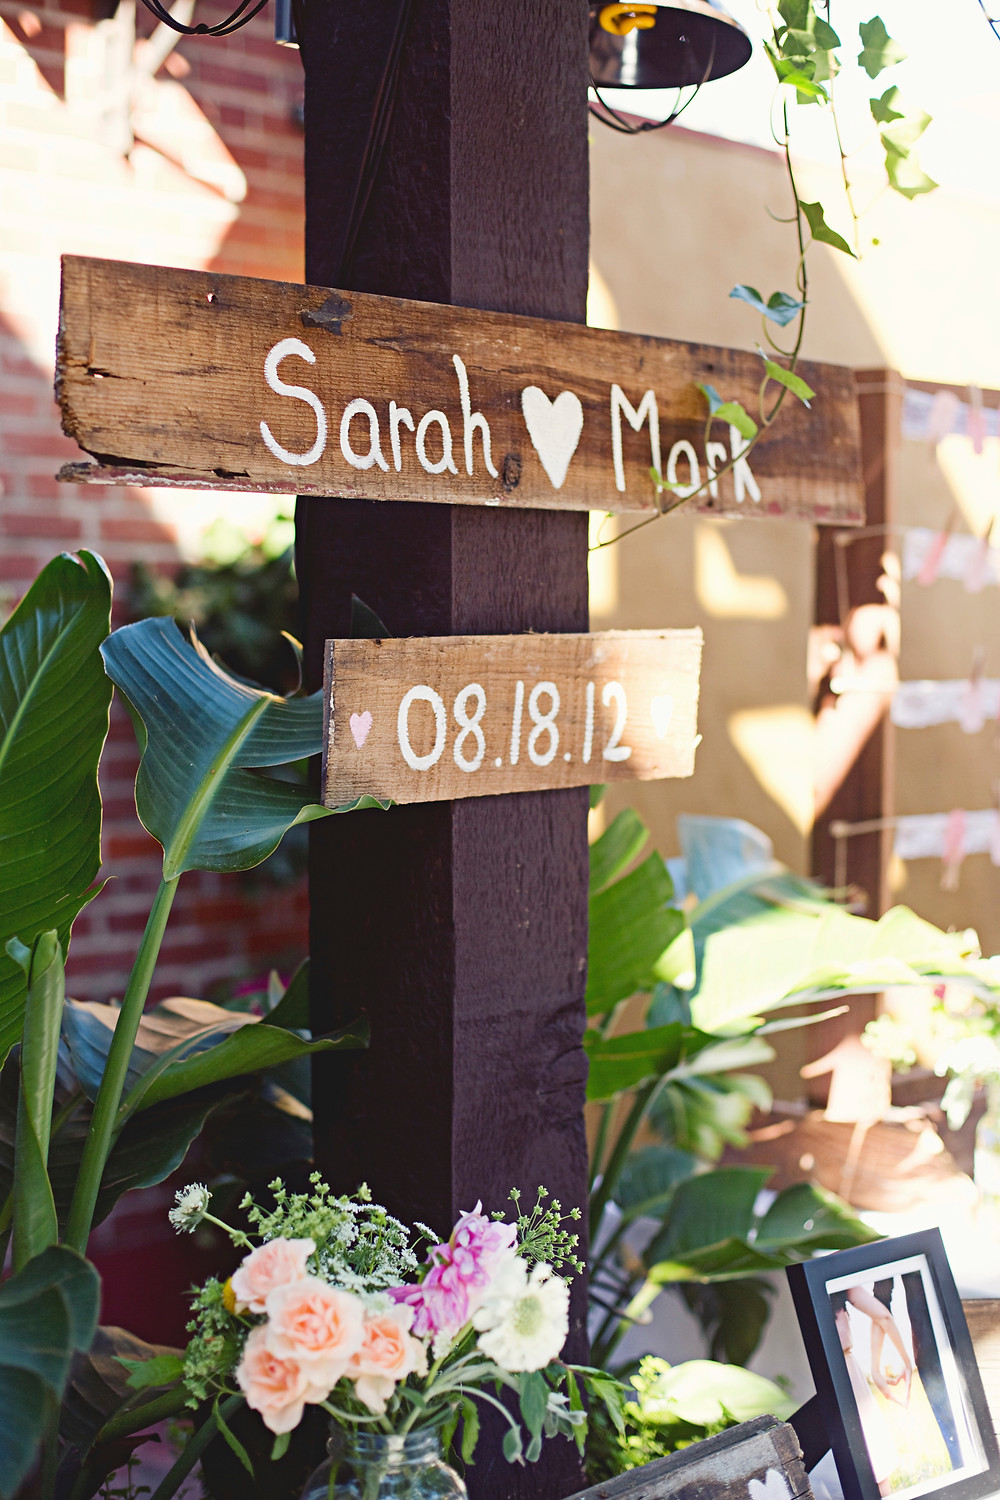 A wooden post displaying some wooden signs at a rustic Italian wedding.